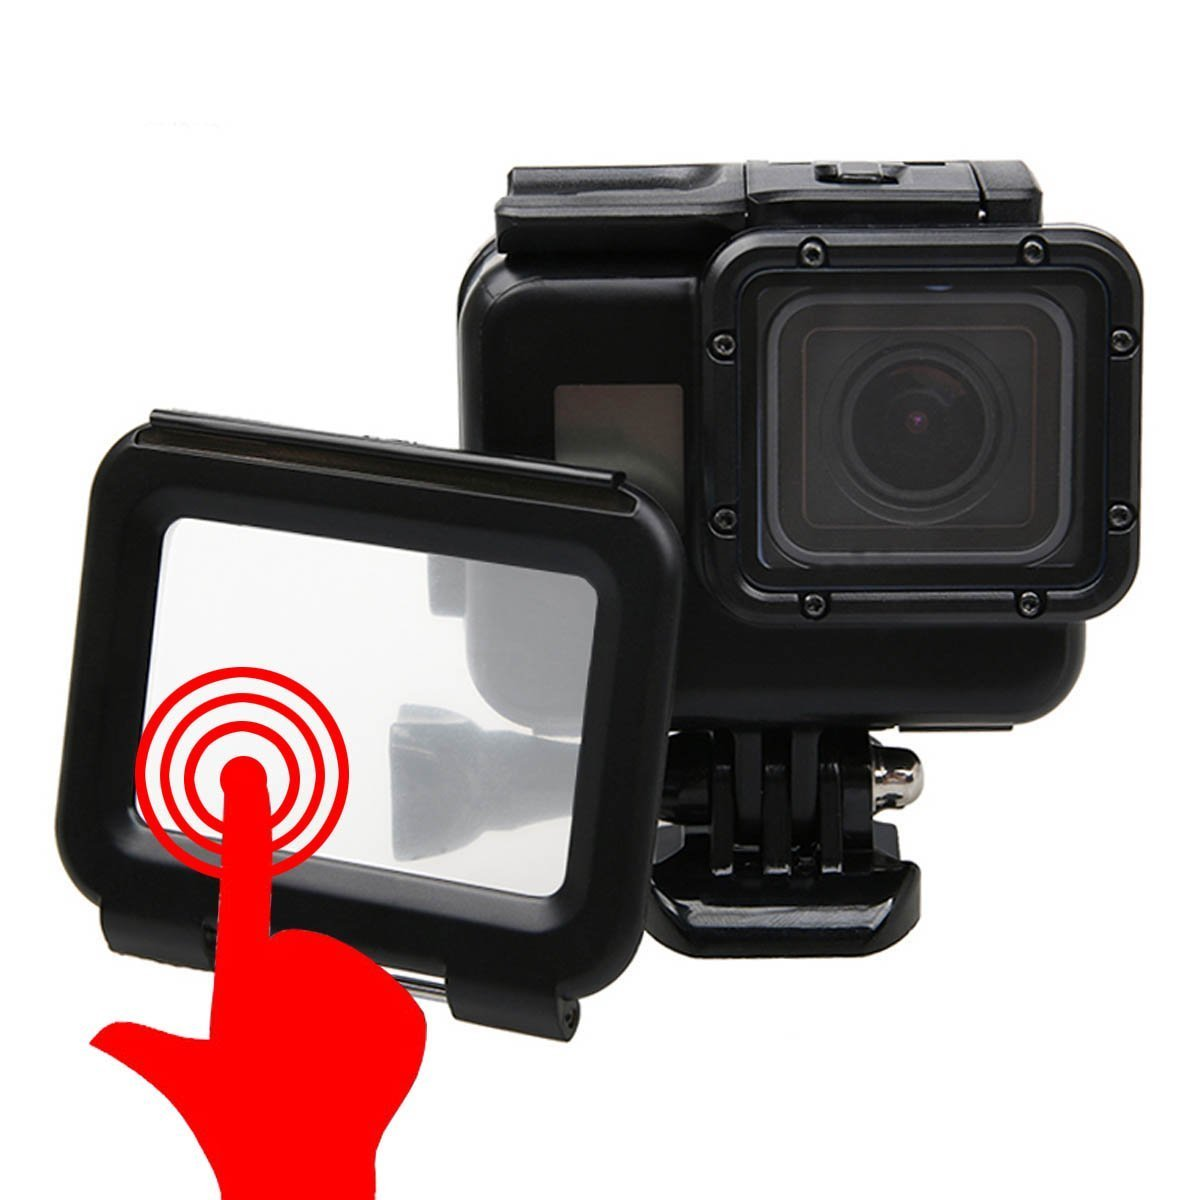 Outtek Waterproof Case for Gopro, Shoot Portable 40M Underwater Waterproof Protective Housing Case Cover with Bracket for GoPro Hero 5 Hero 7 - Black by Outtek